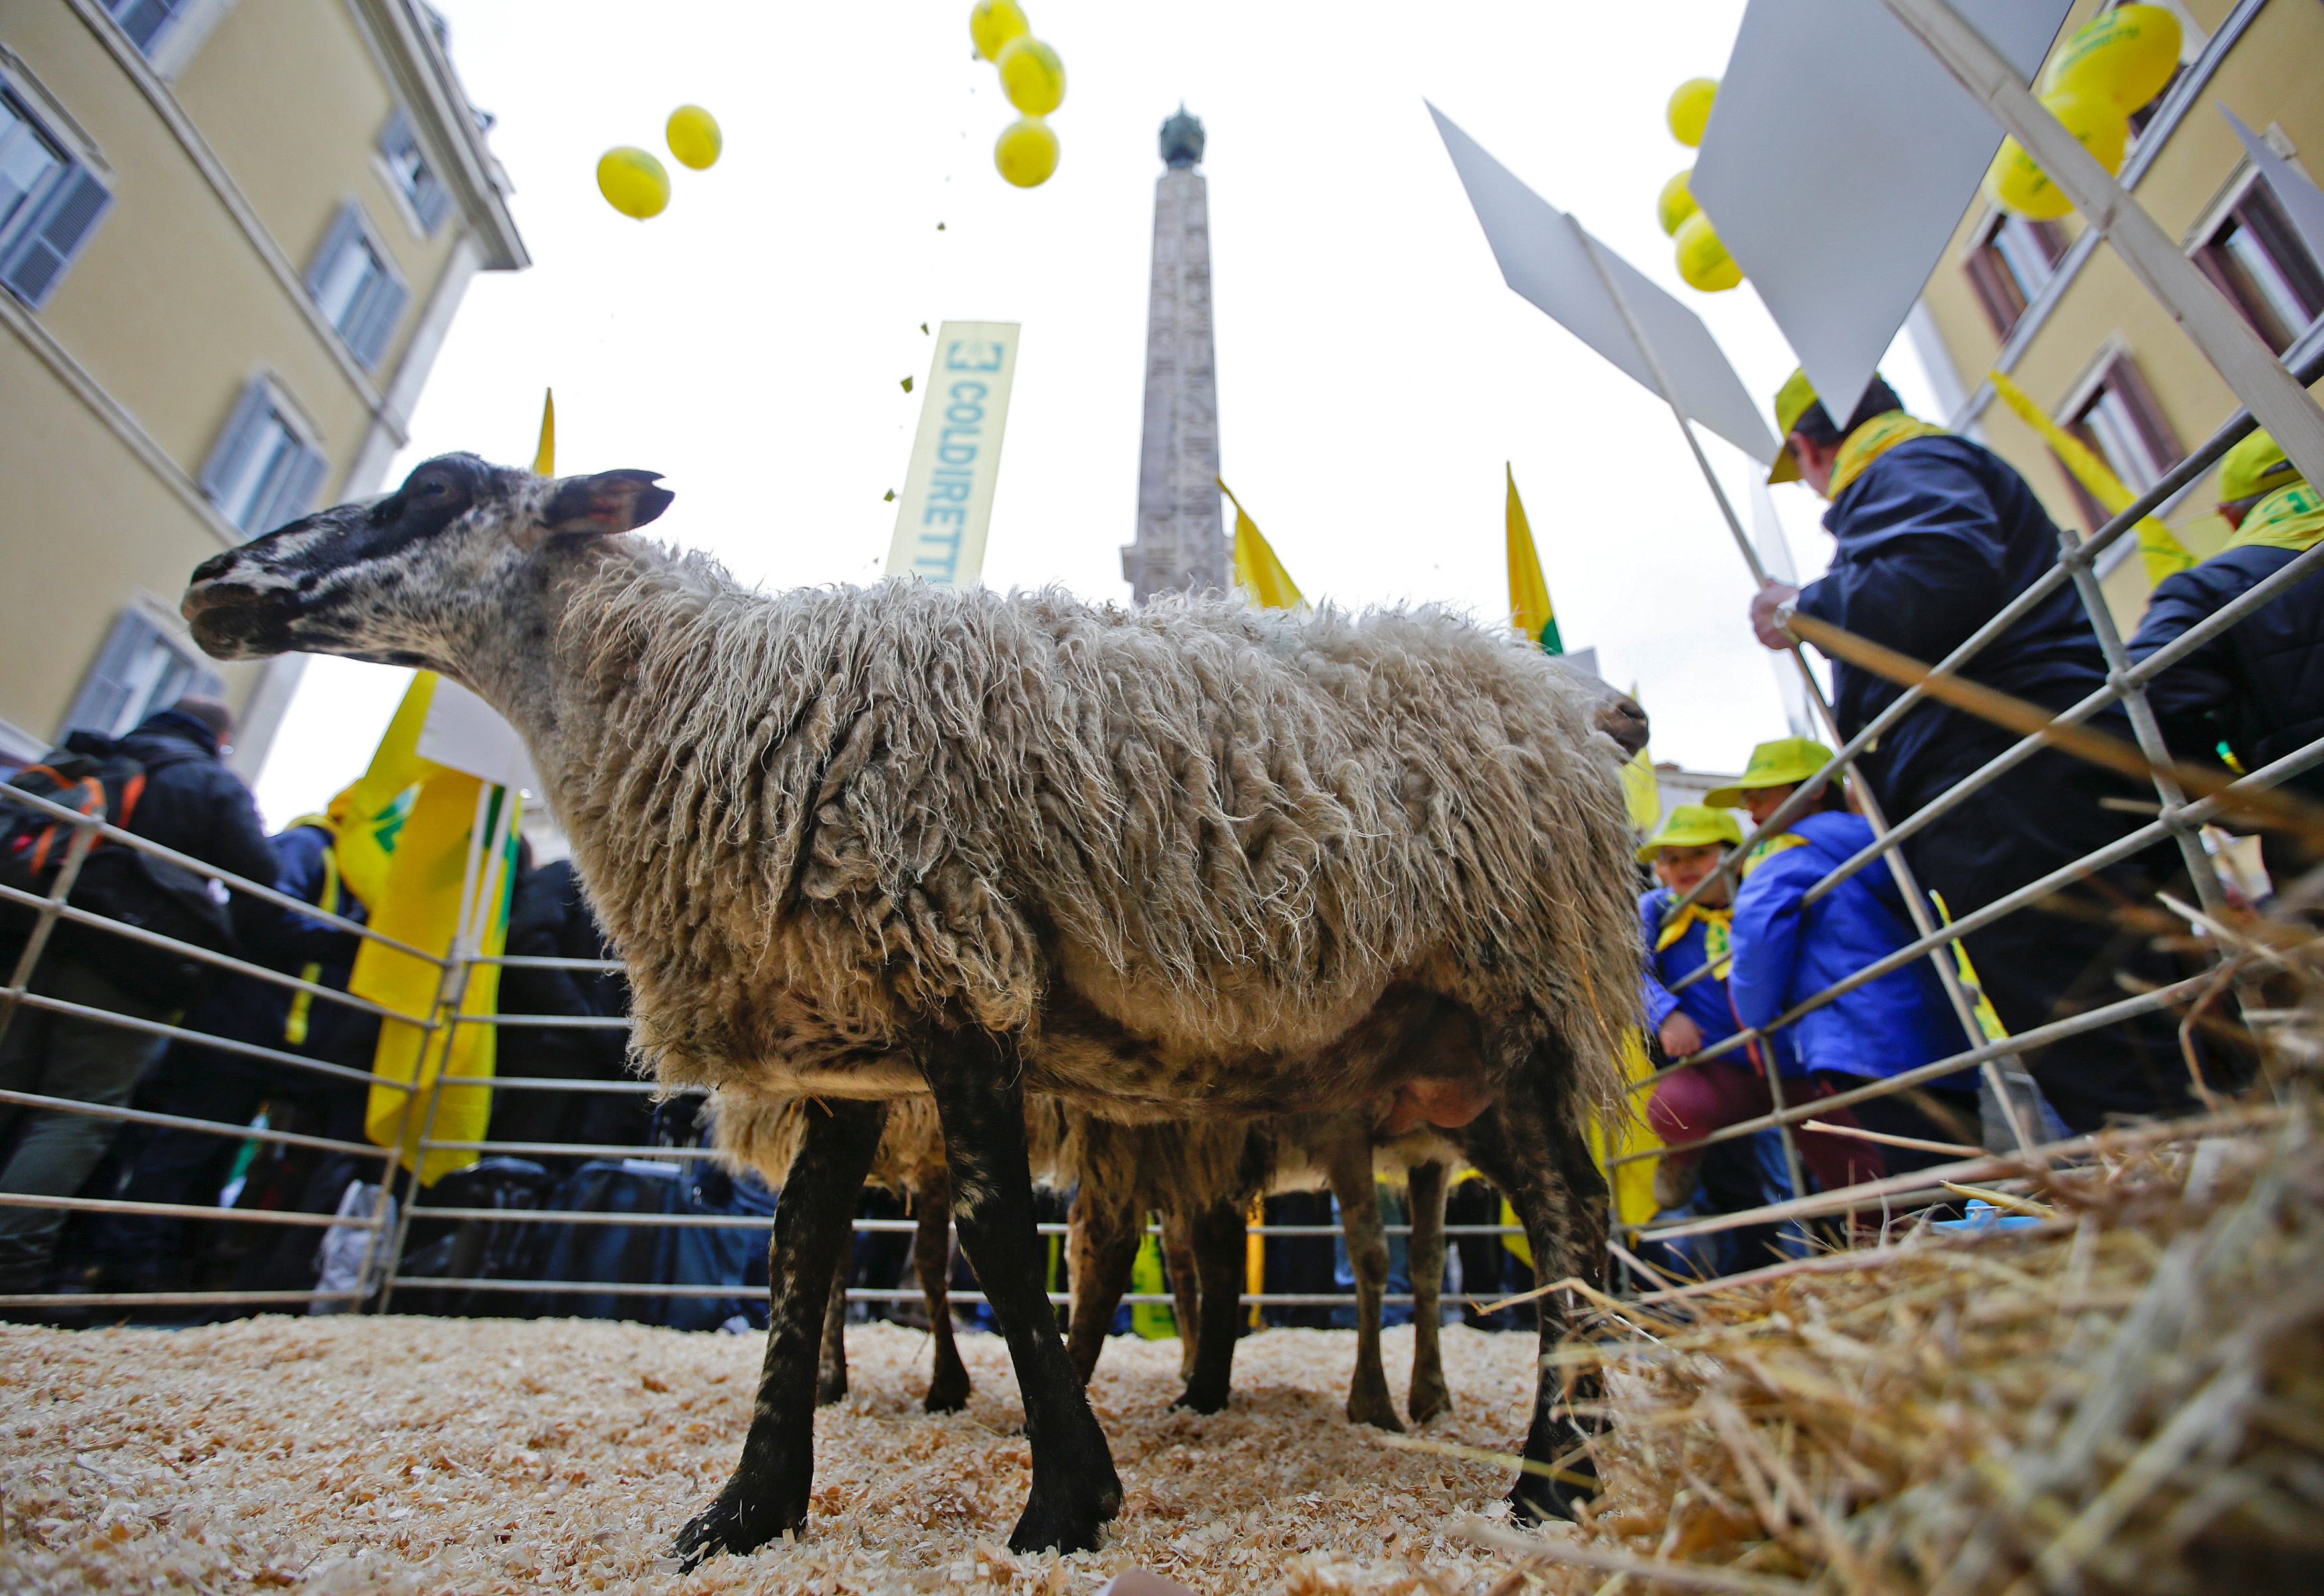 A sheep is seen in front of the Montecitorio Palace during a protest held by farmers from the earthquake zones of Amatrice, in Rome, Italy March 7, 2017. REUTERS/Max Rossi